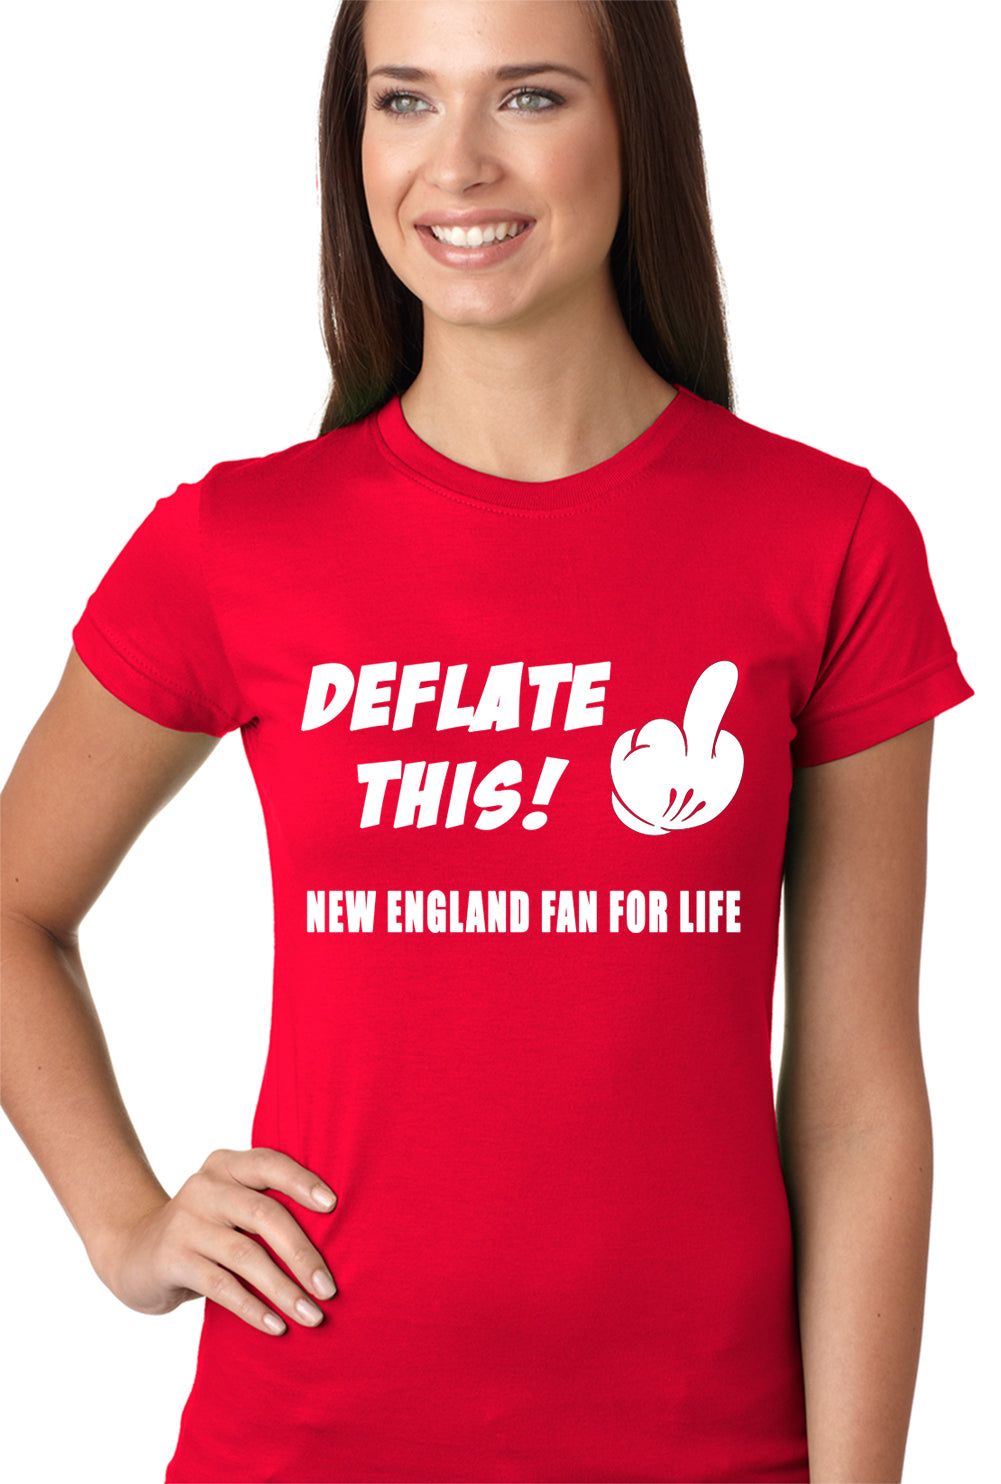 Deflate This! Middle Finger New England Fan For Life Girls T-shirt